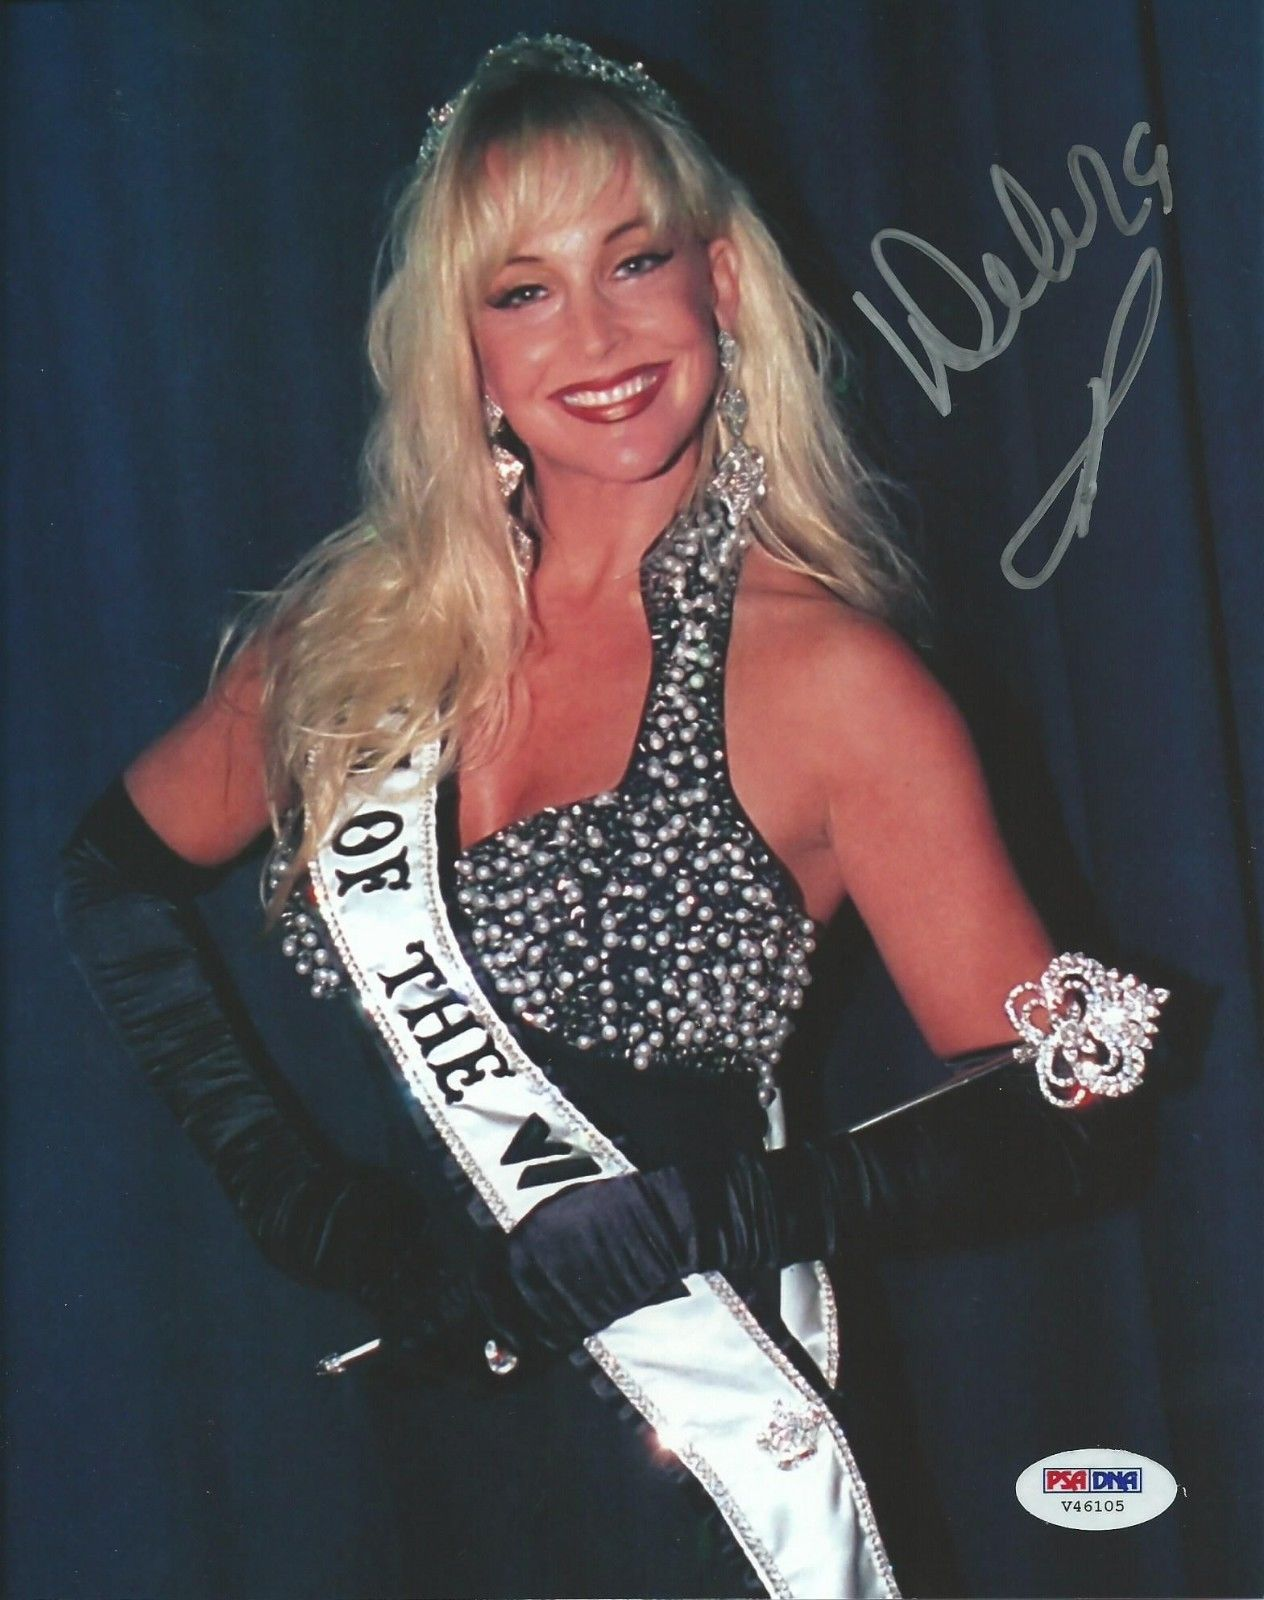 High Quality autograph - Queen of WCW